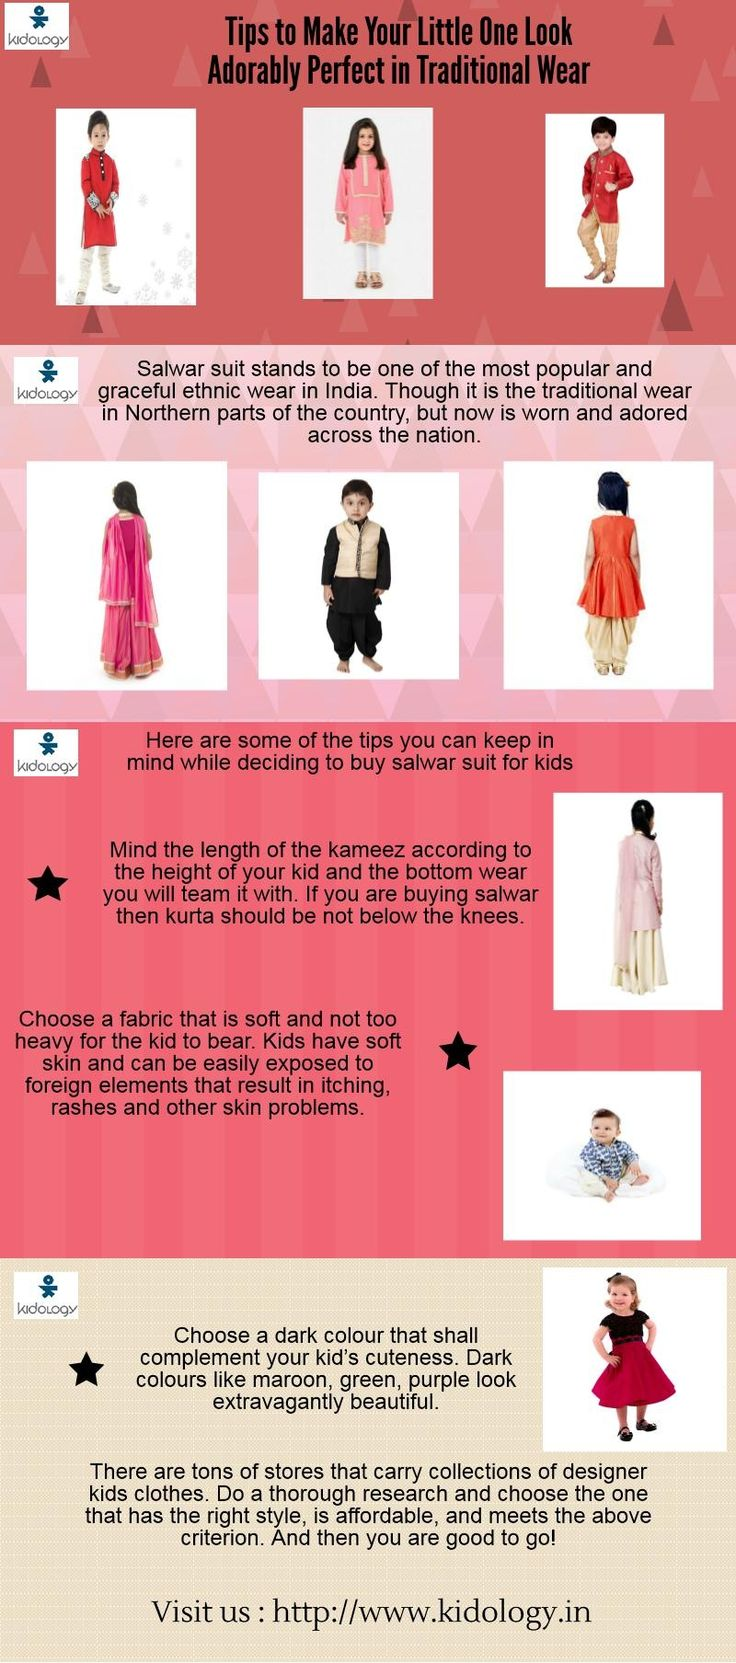 Salwar suit stands to be one of the most popular and graceful ethnic wear in India. Though it is the traditional wear in Northern parts of the country, but now is worn and adored across the nation. Here are some of the tips you can keep in mind while deciding to buy salwar suit for kids.